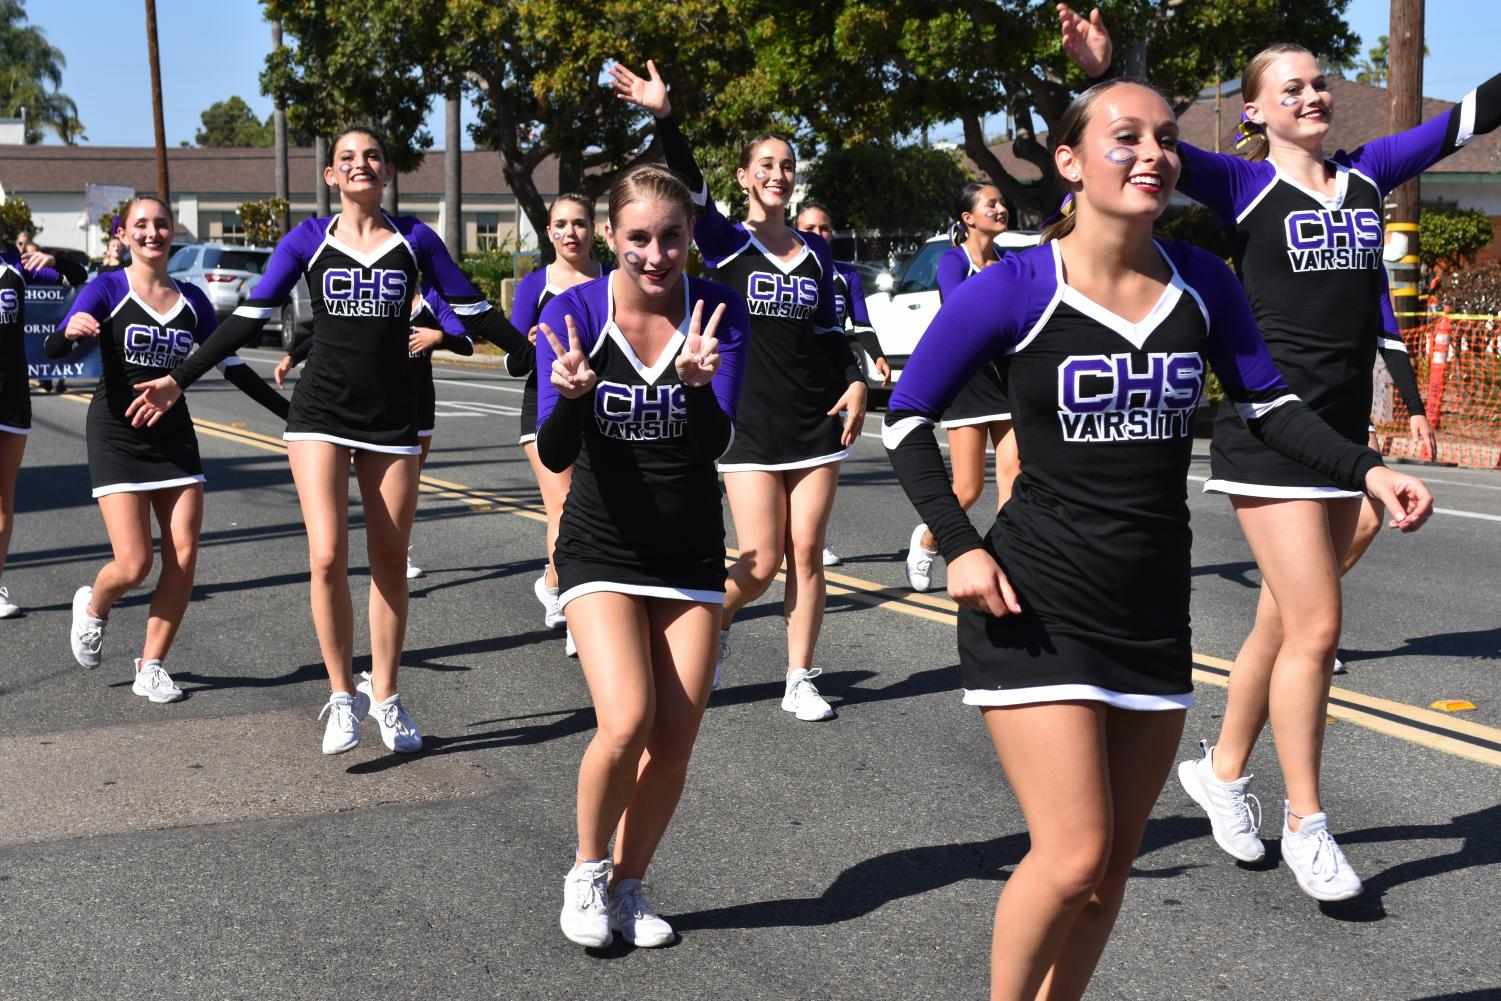 Lancer Dancers dance through the streets of down town Carlsbad, with Senior Maddie Dufault leading the charge. The Lancer Dancers perform tirelessly through the whole parade.